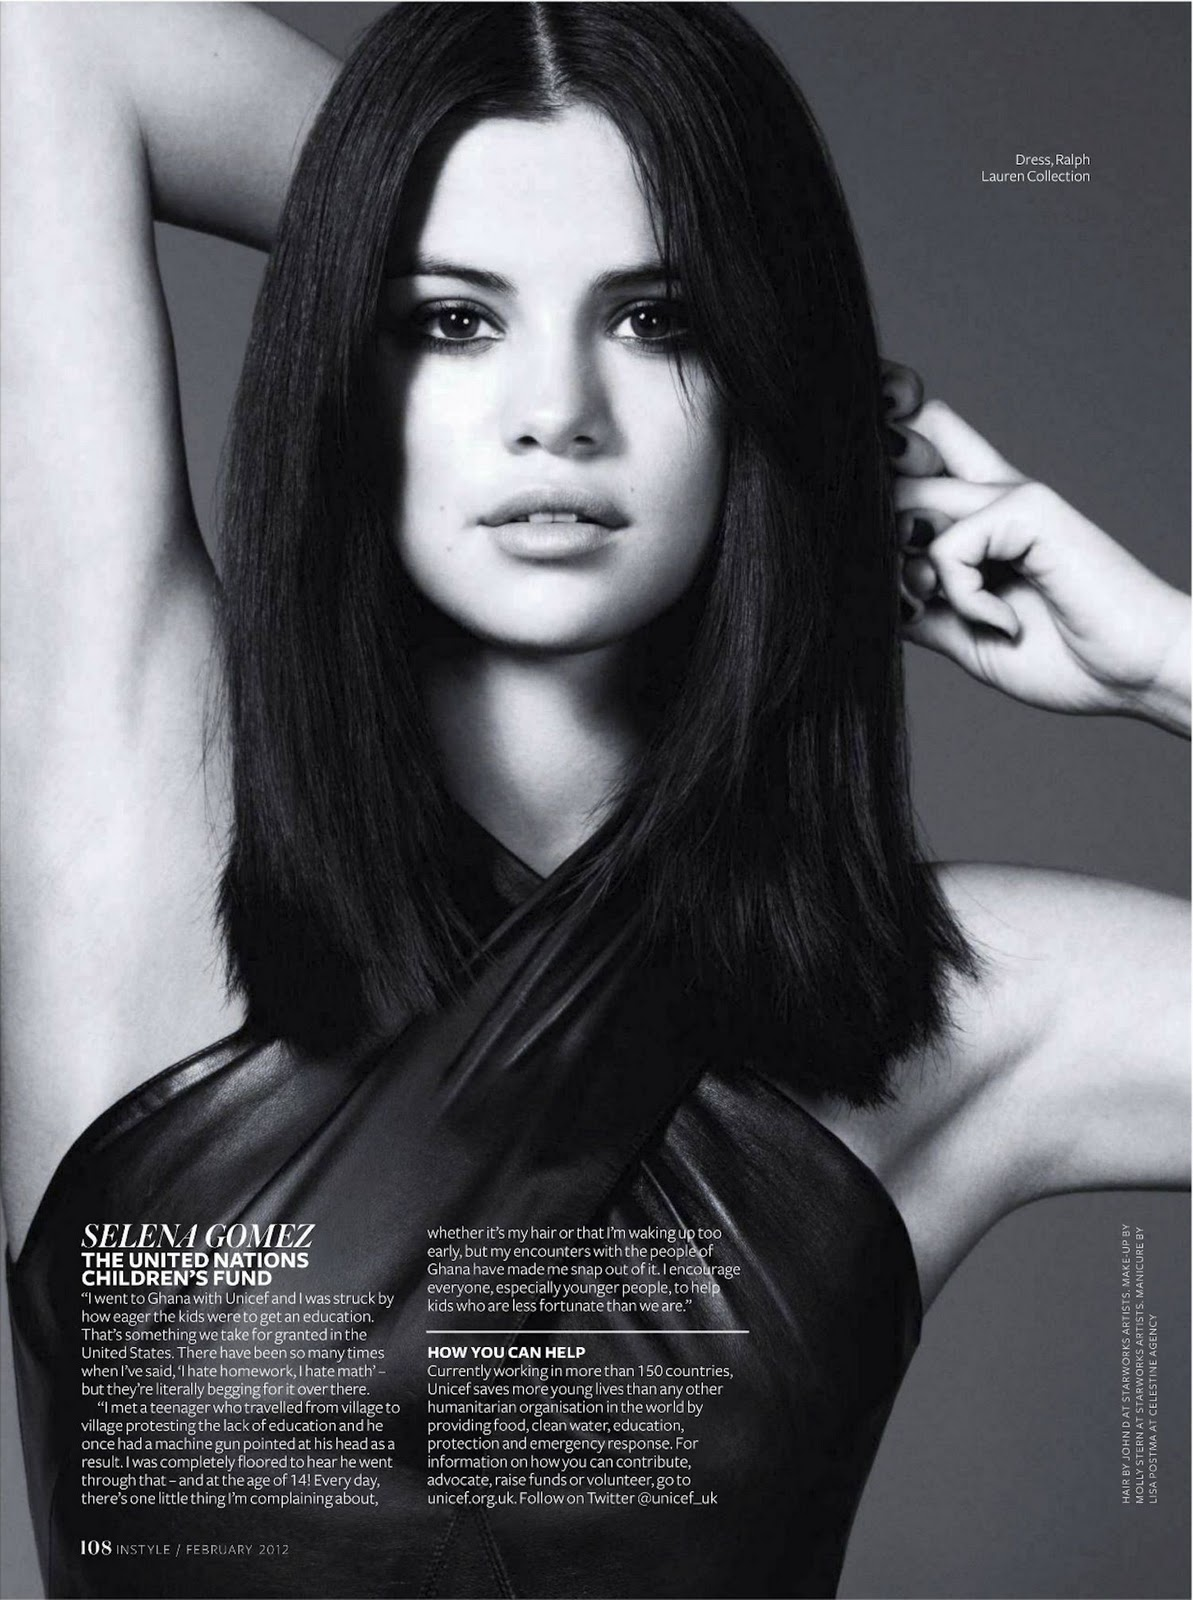 selena gomez instyle come  get it wallpapers - Selena Gomez Instyle Come & Get It Wallpapers Cash